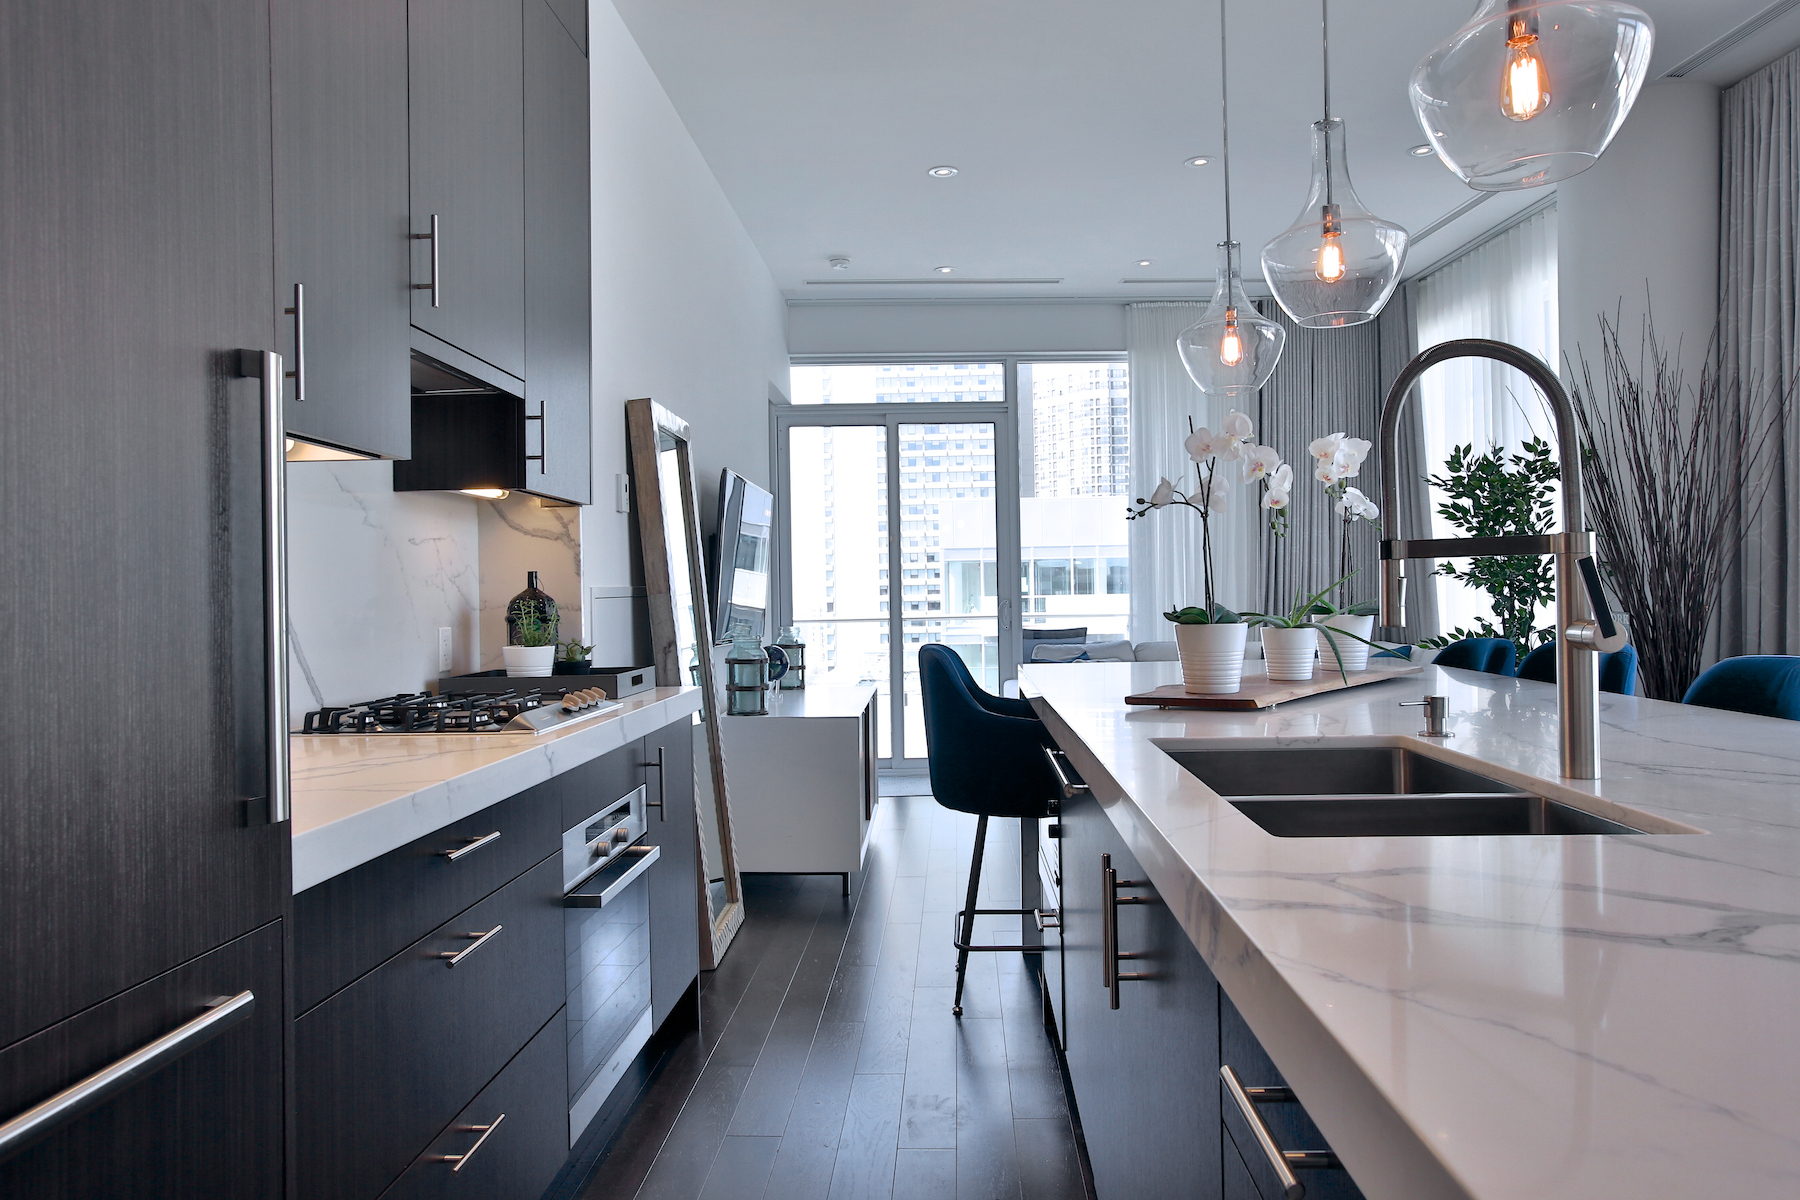 Refinished kitchen with upgraded custom island for entertaining in casual elegance or romantic gourmet meals with your loved one. Cabinets built with smart and ample storage designed for condo living without compromise.